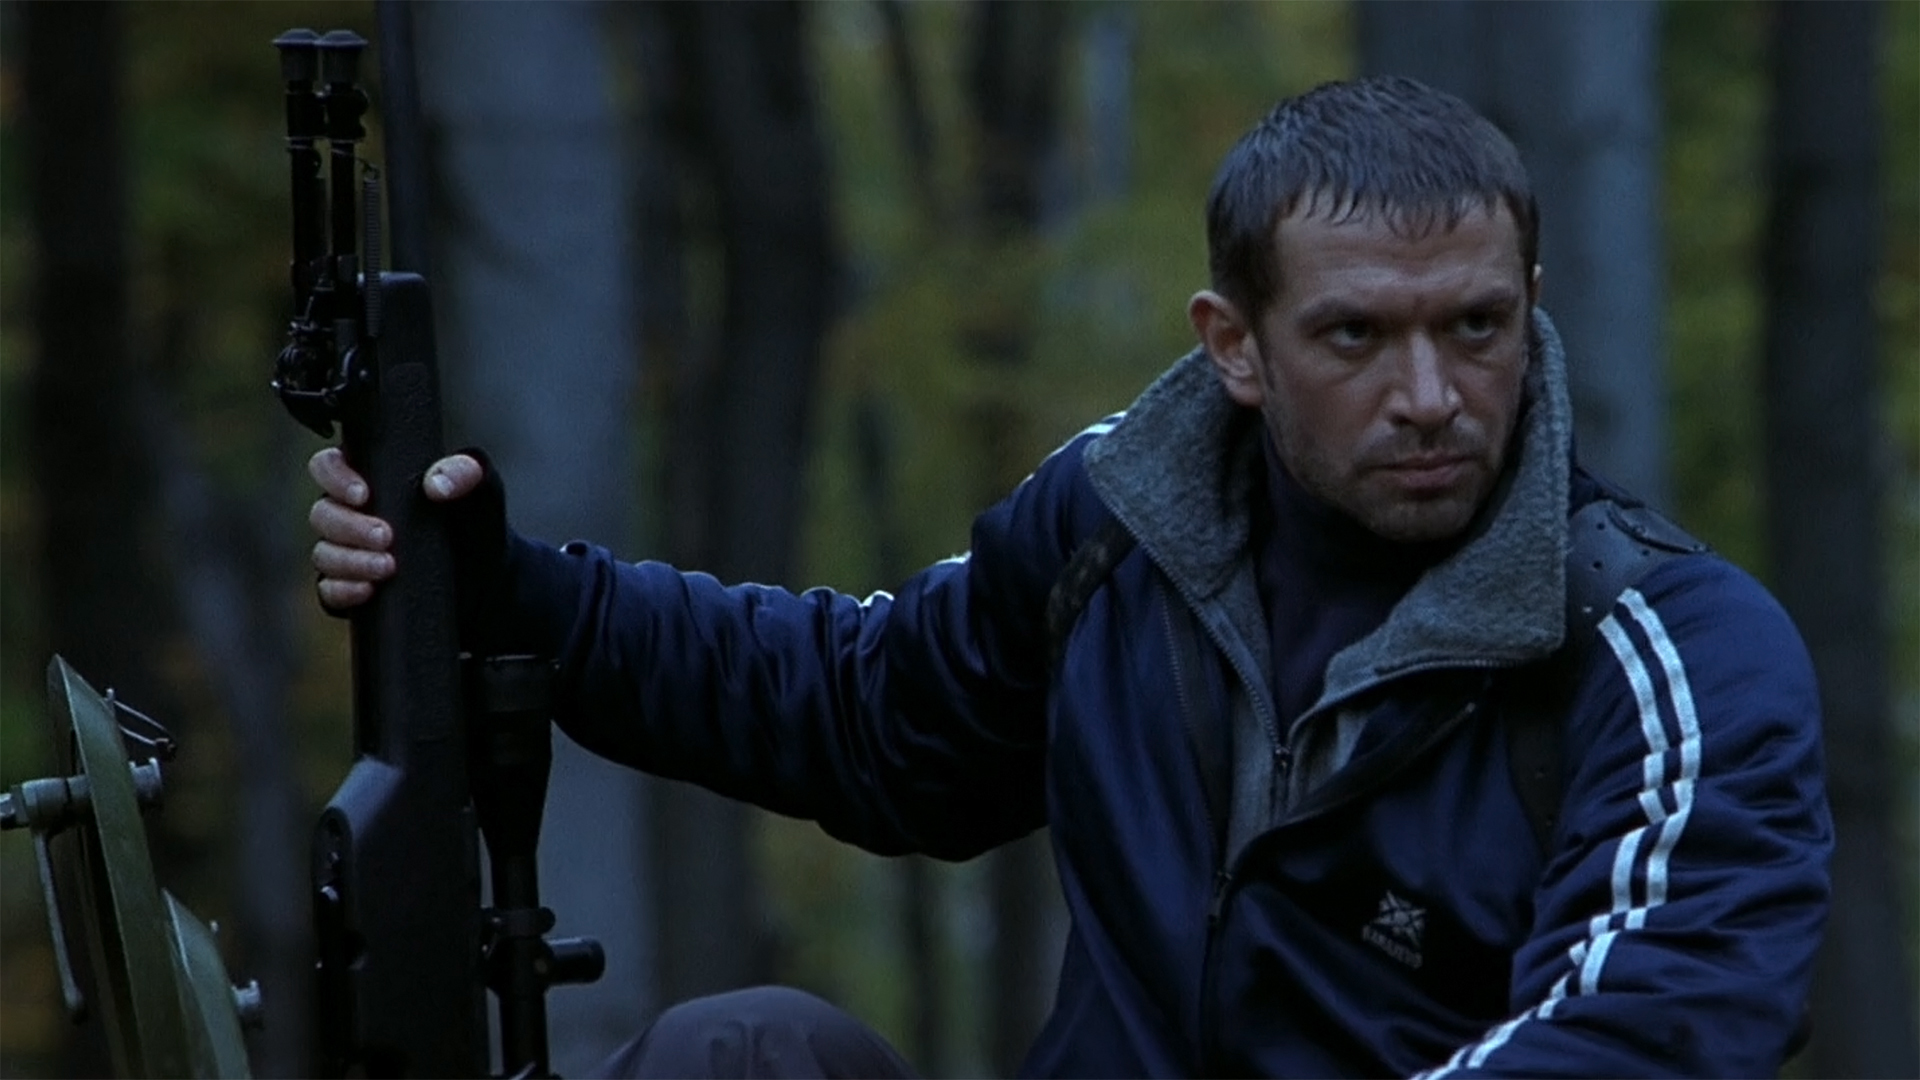 the bosnian genocide in behind enemy lines a movie by john moore Behind enemy lines is one of the best action movies i have ever seen but it isn't just an action movie the location (bosnia) is so well-researched and the scenes are planned out to the last detail.